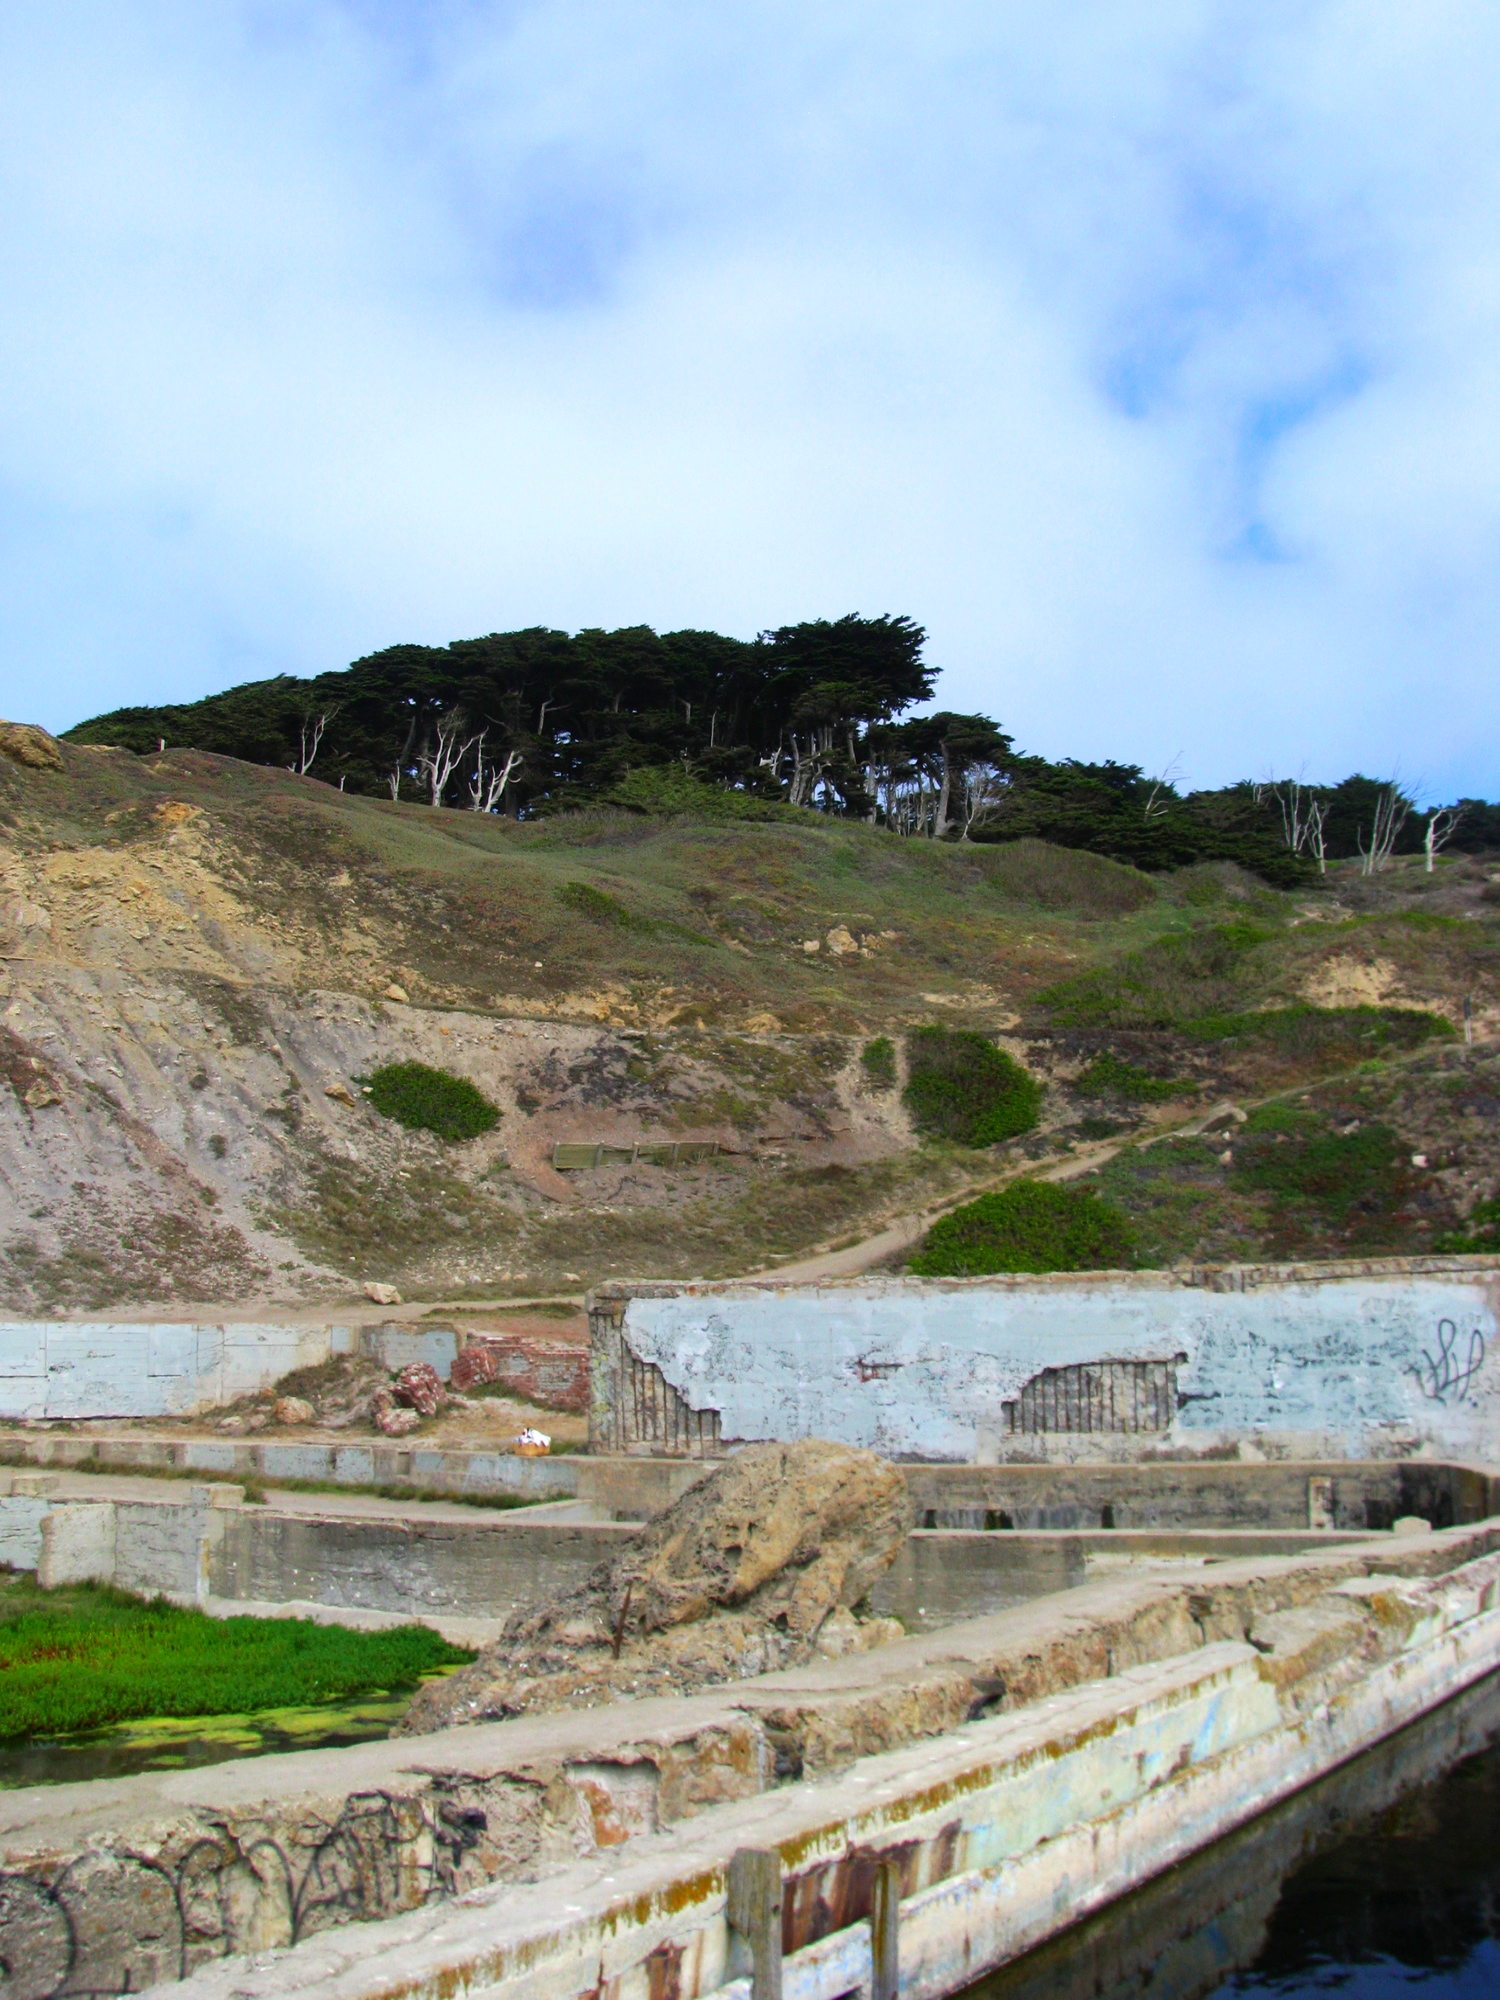 sutro baths from the bottom